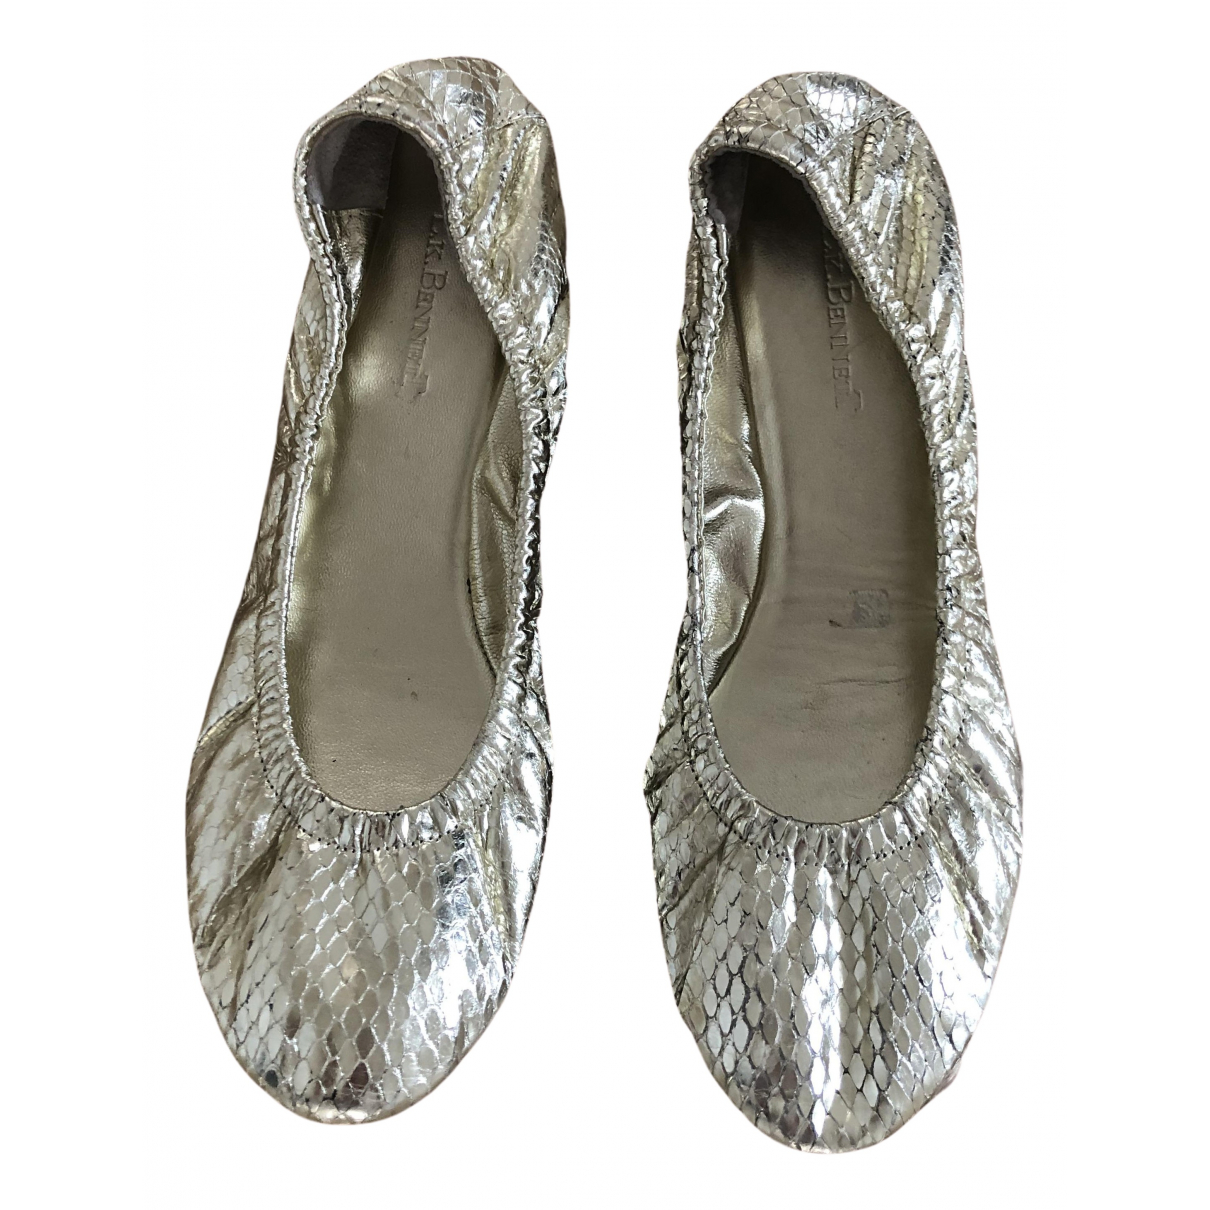 Lk Bennett N Gold Water snake Ballet flats for Women 38 EU